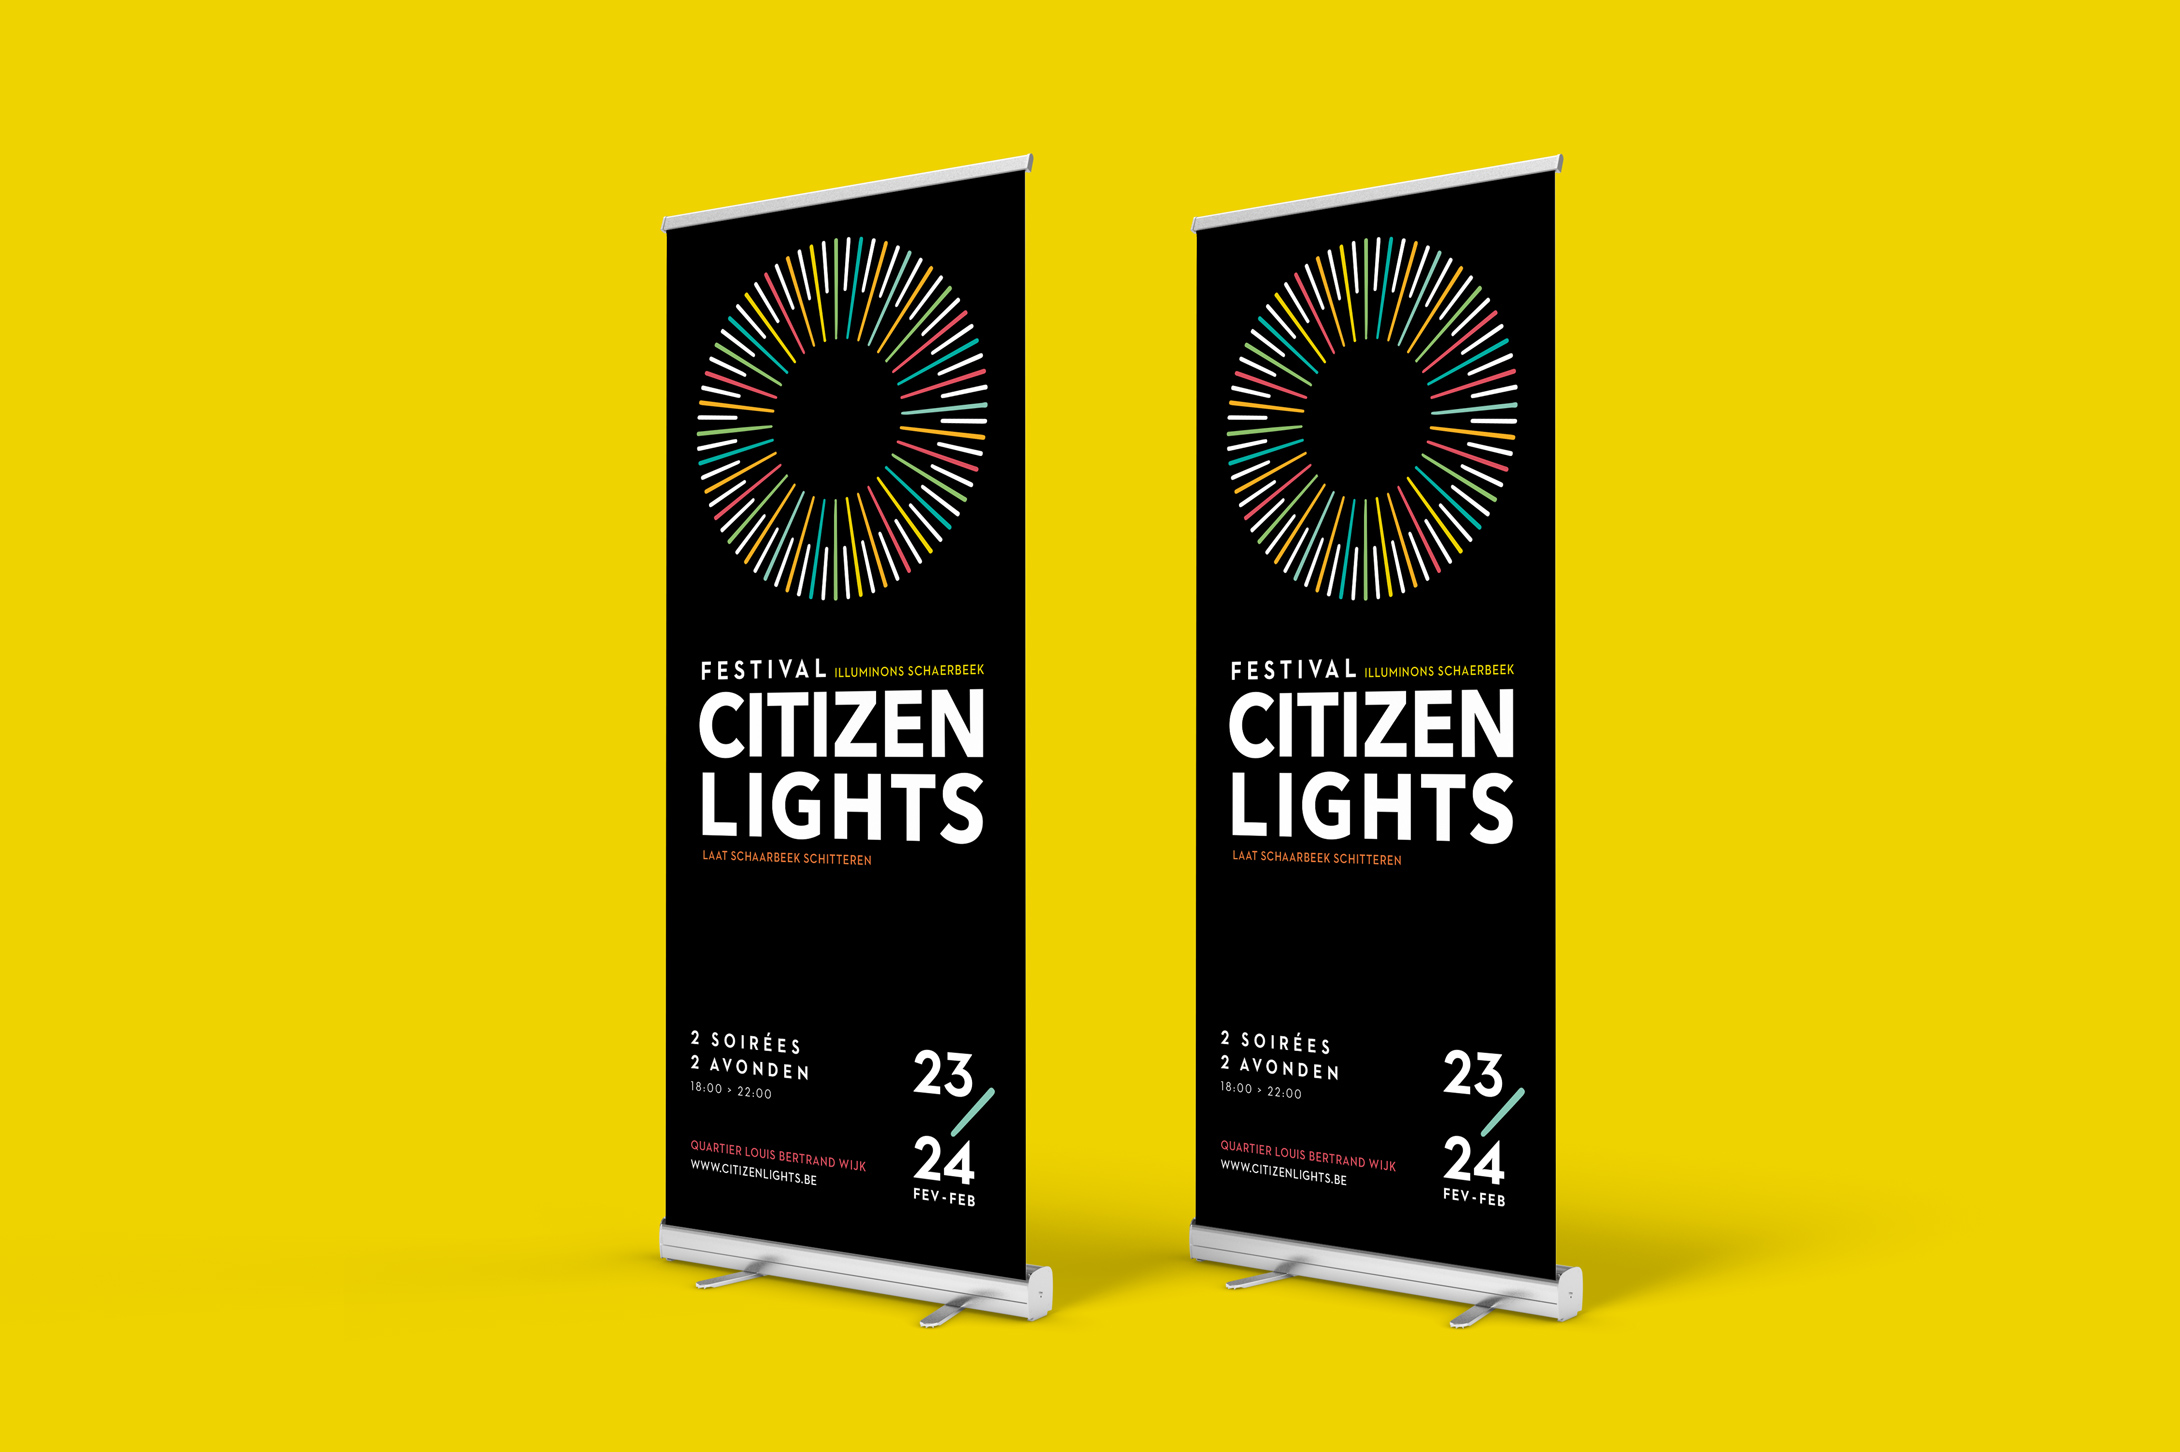 brussels festival, schaerbeek festival, light festival, citizen lights, communication campaign, studio fiftyfifty